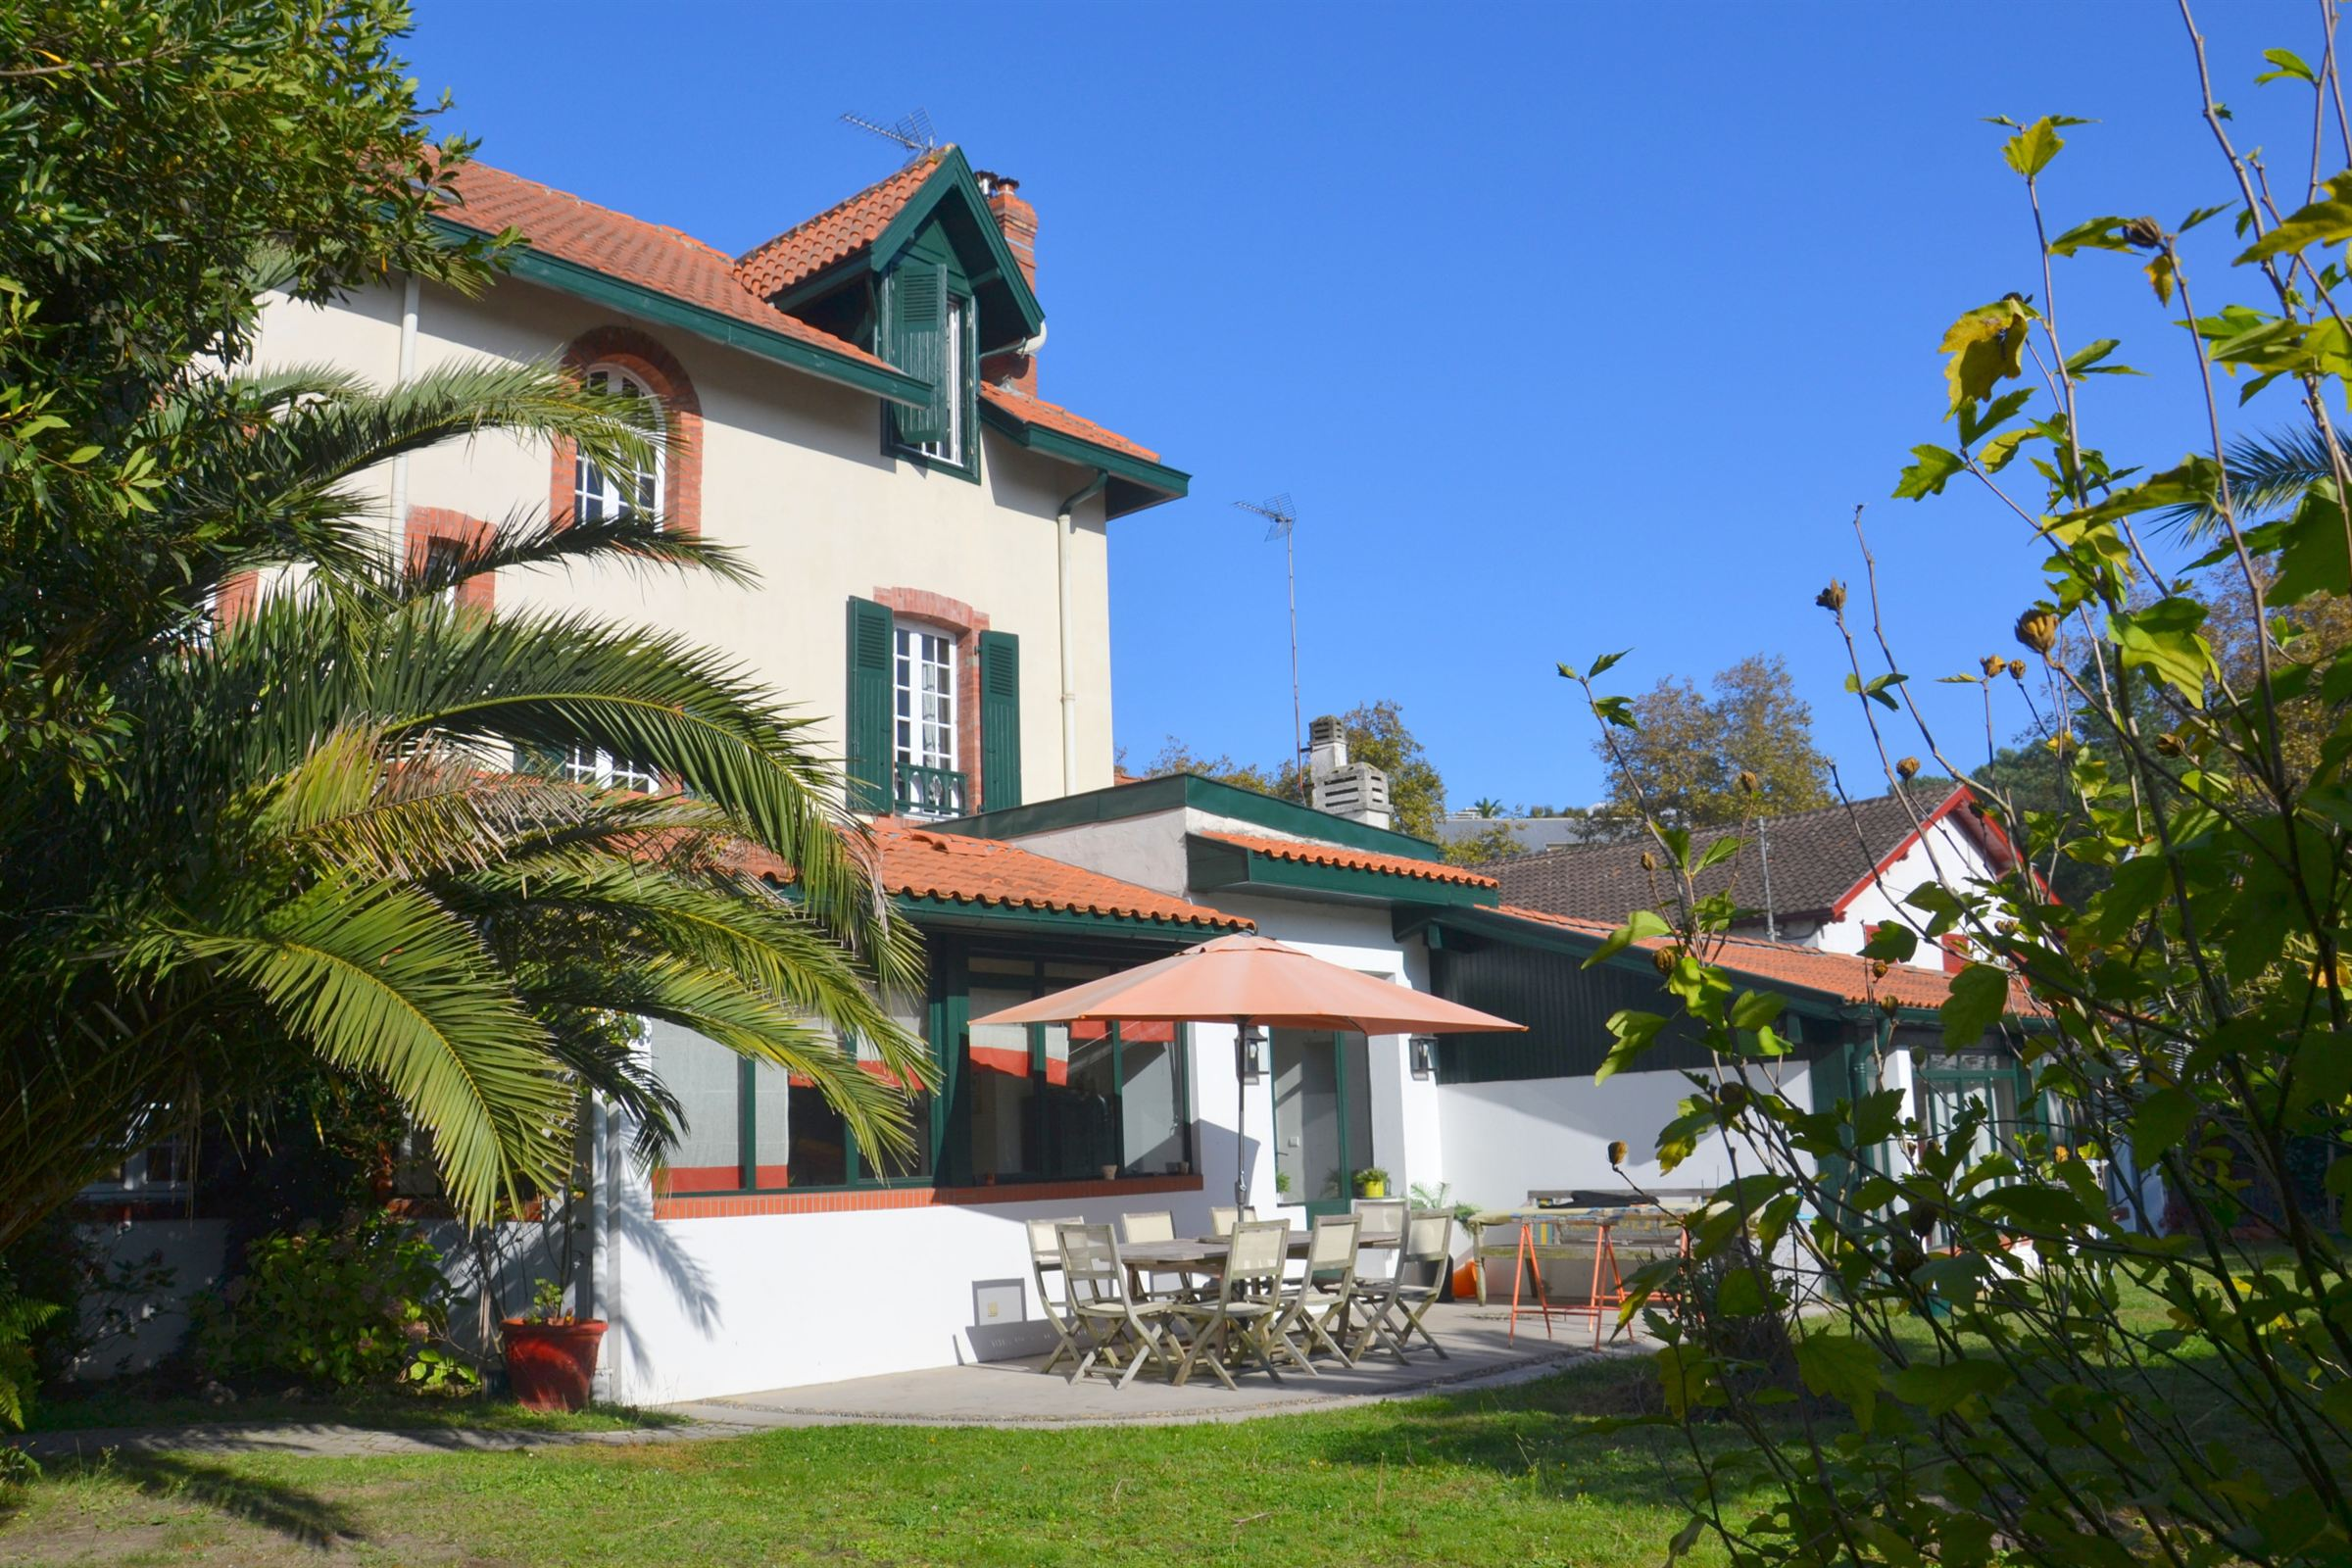 Single Family Home for Sale at BIARRITZ ST CHARLES Biarritz, Aquitaine, 64200 France